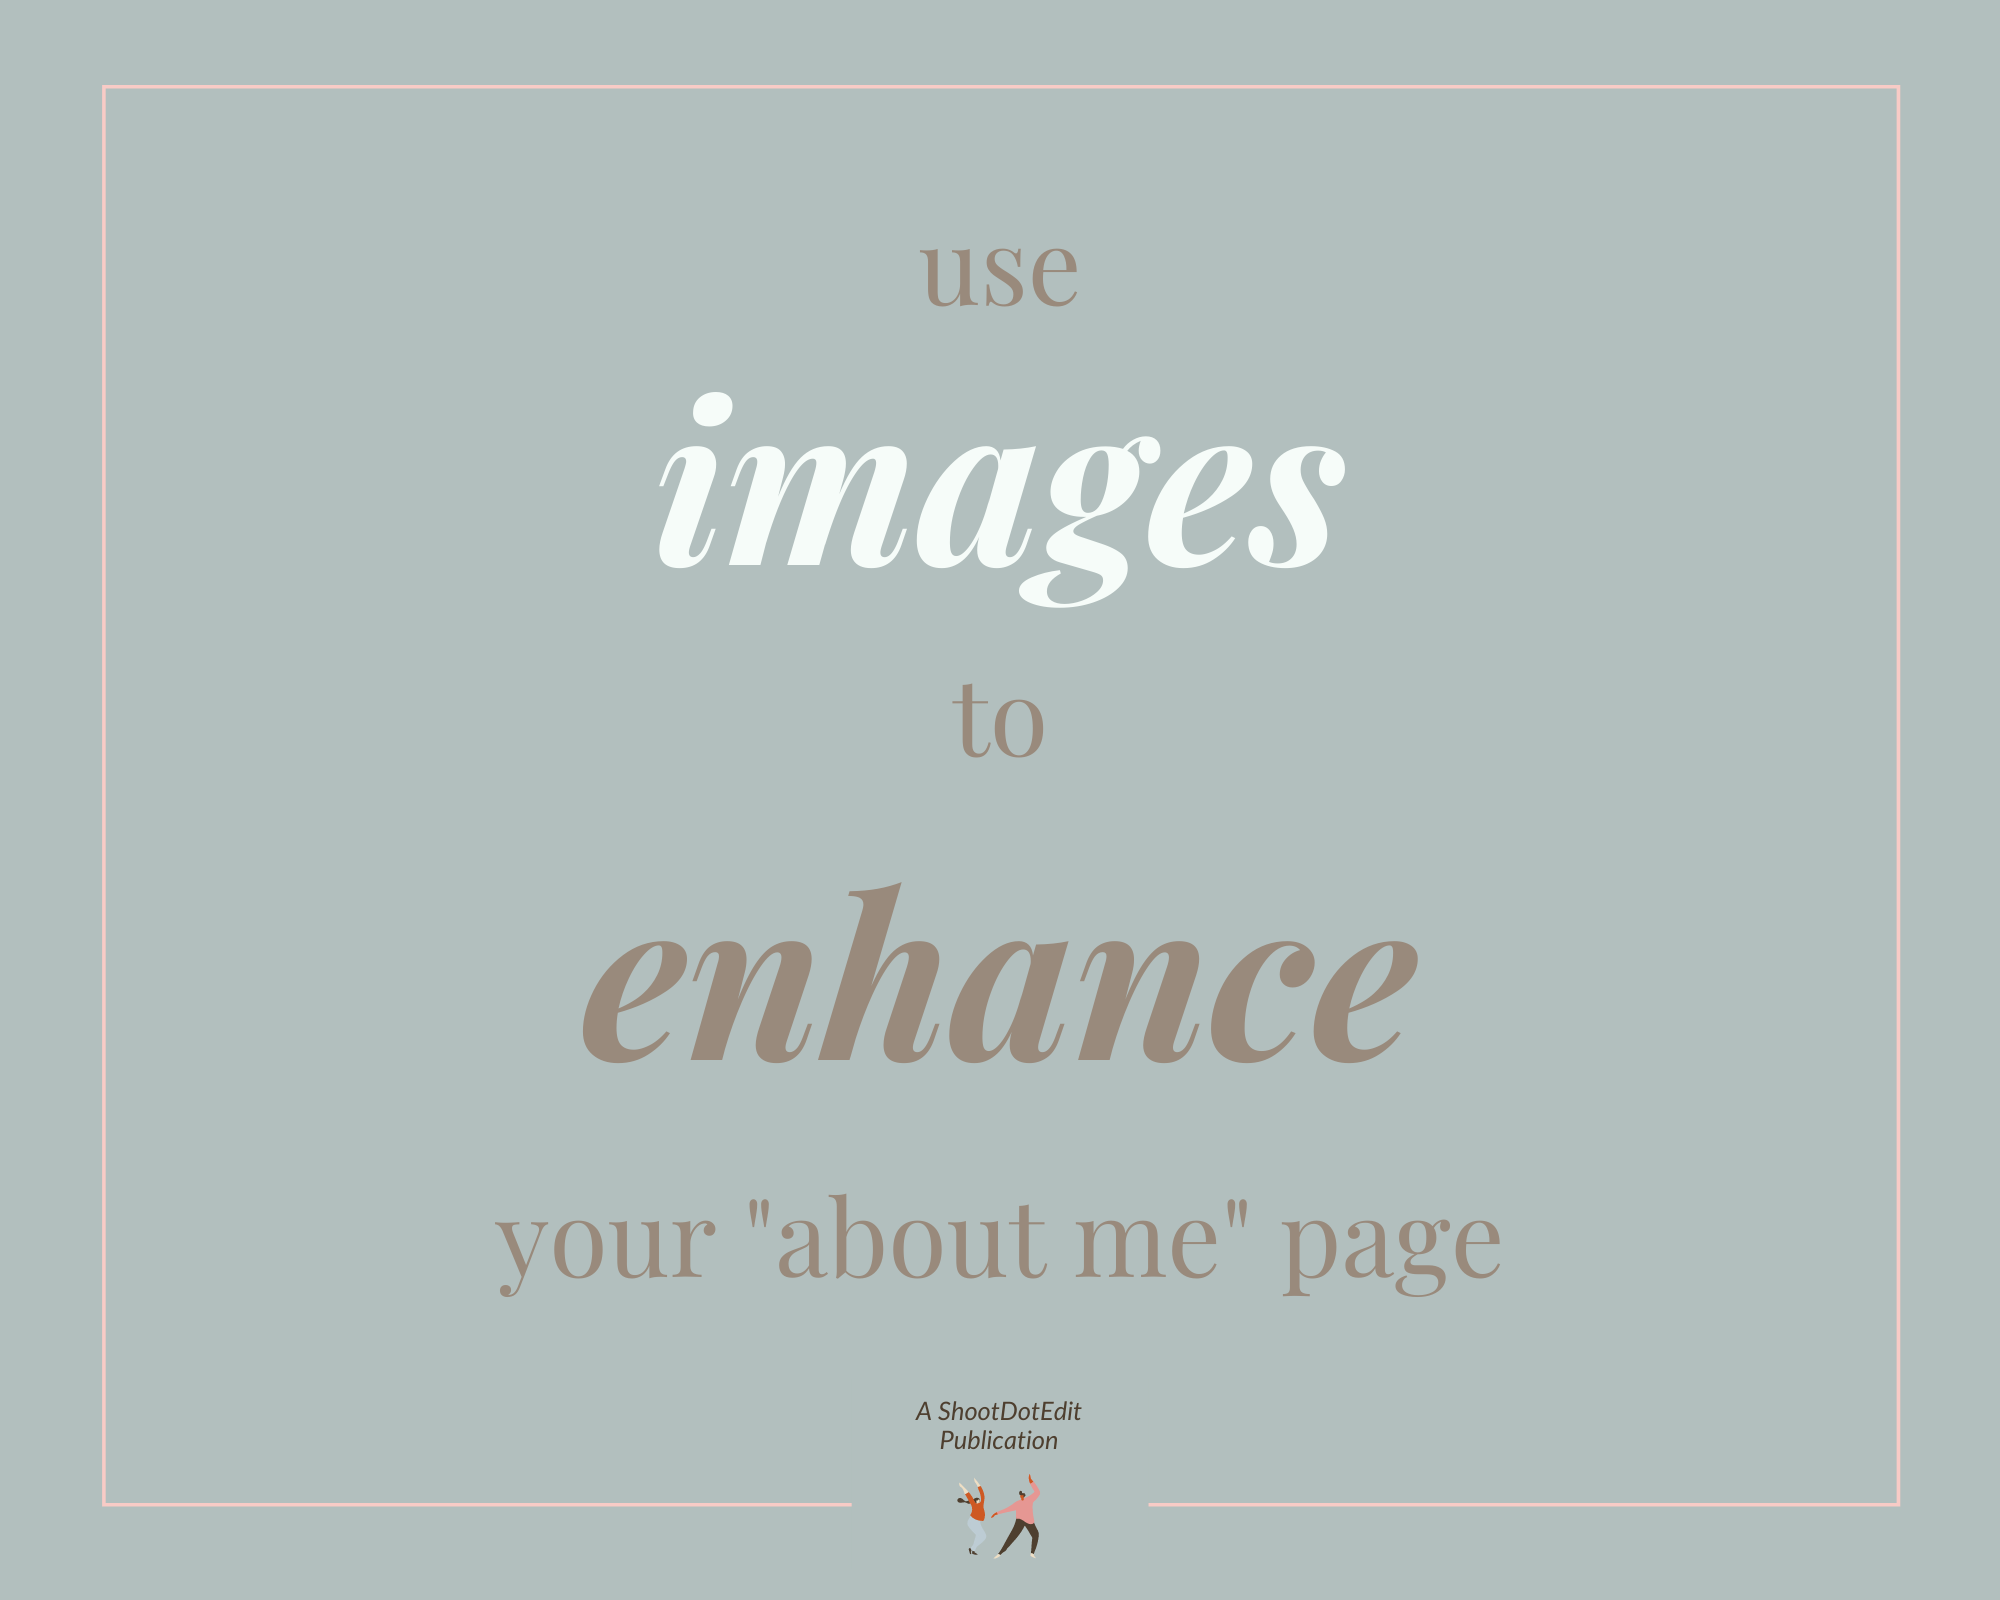 Infographic stating use images to enhance your about me page